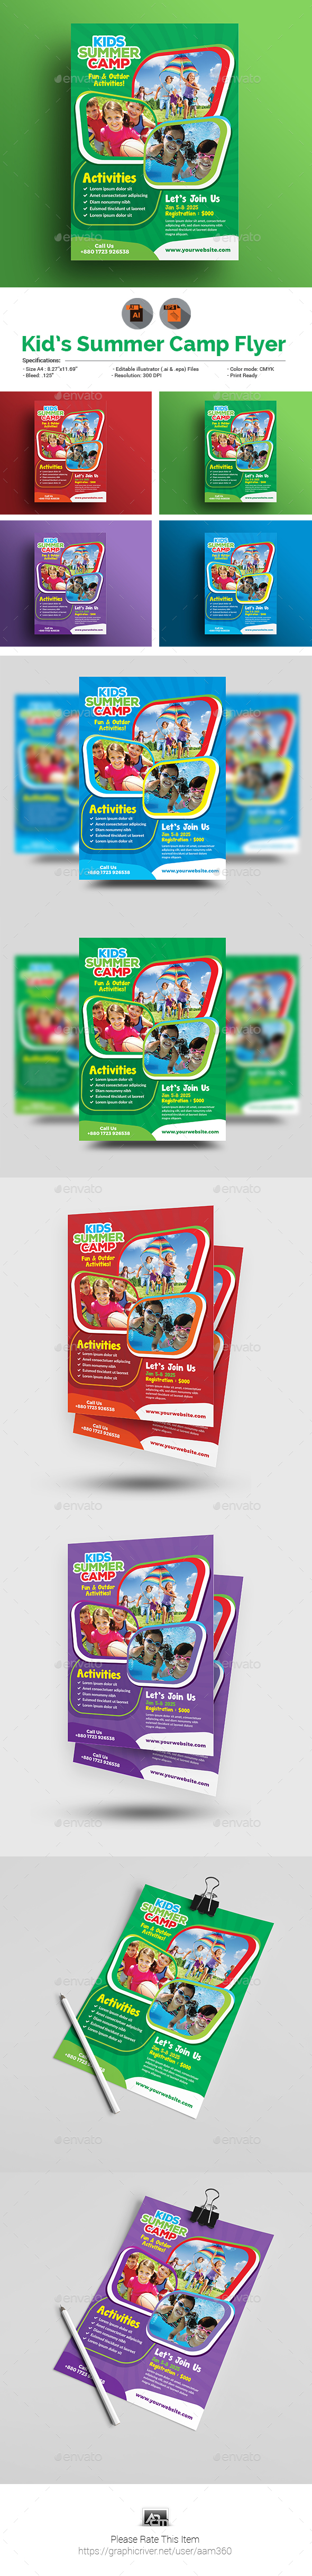 Kid's Summer Camp Flyer - Flyers Print Templates